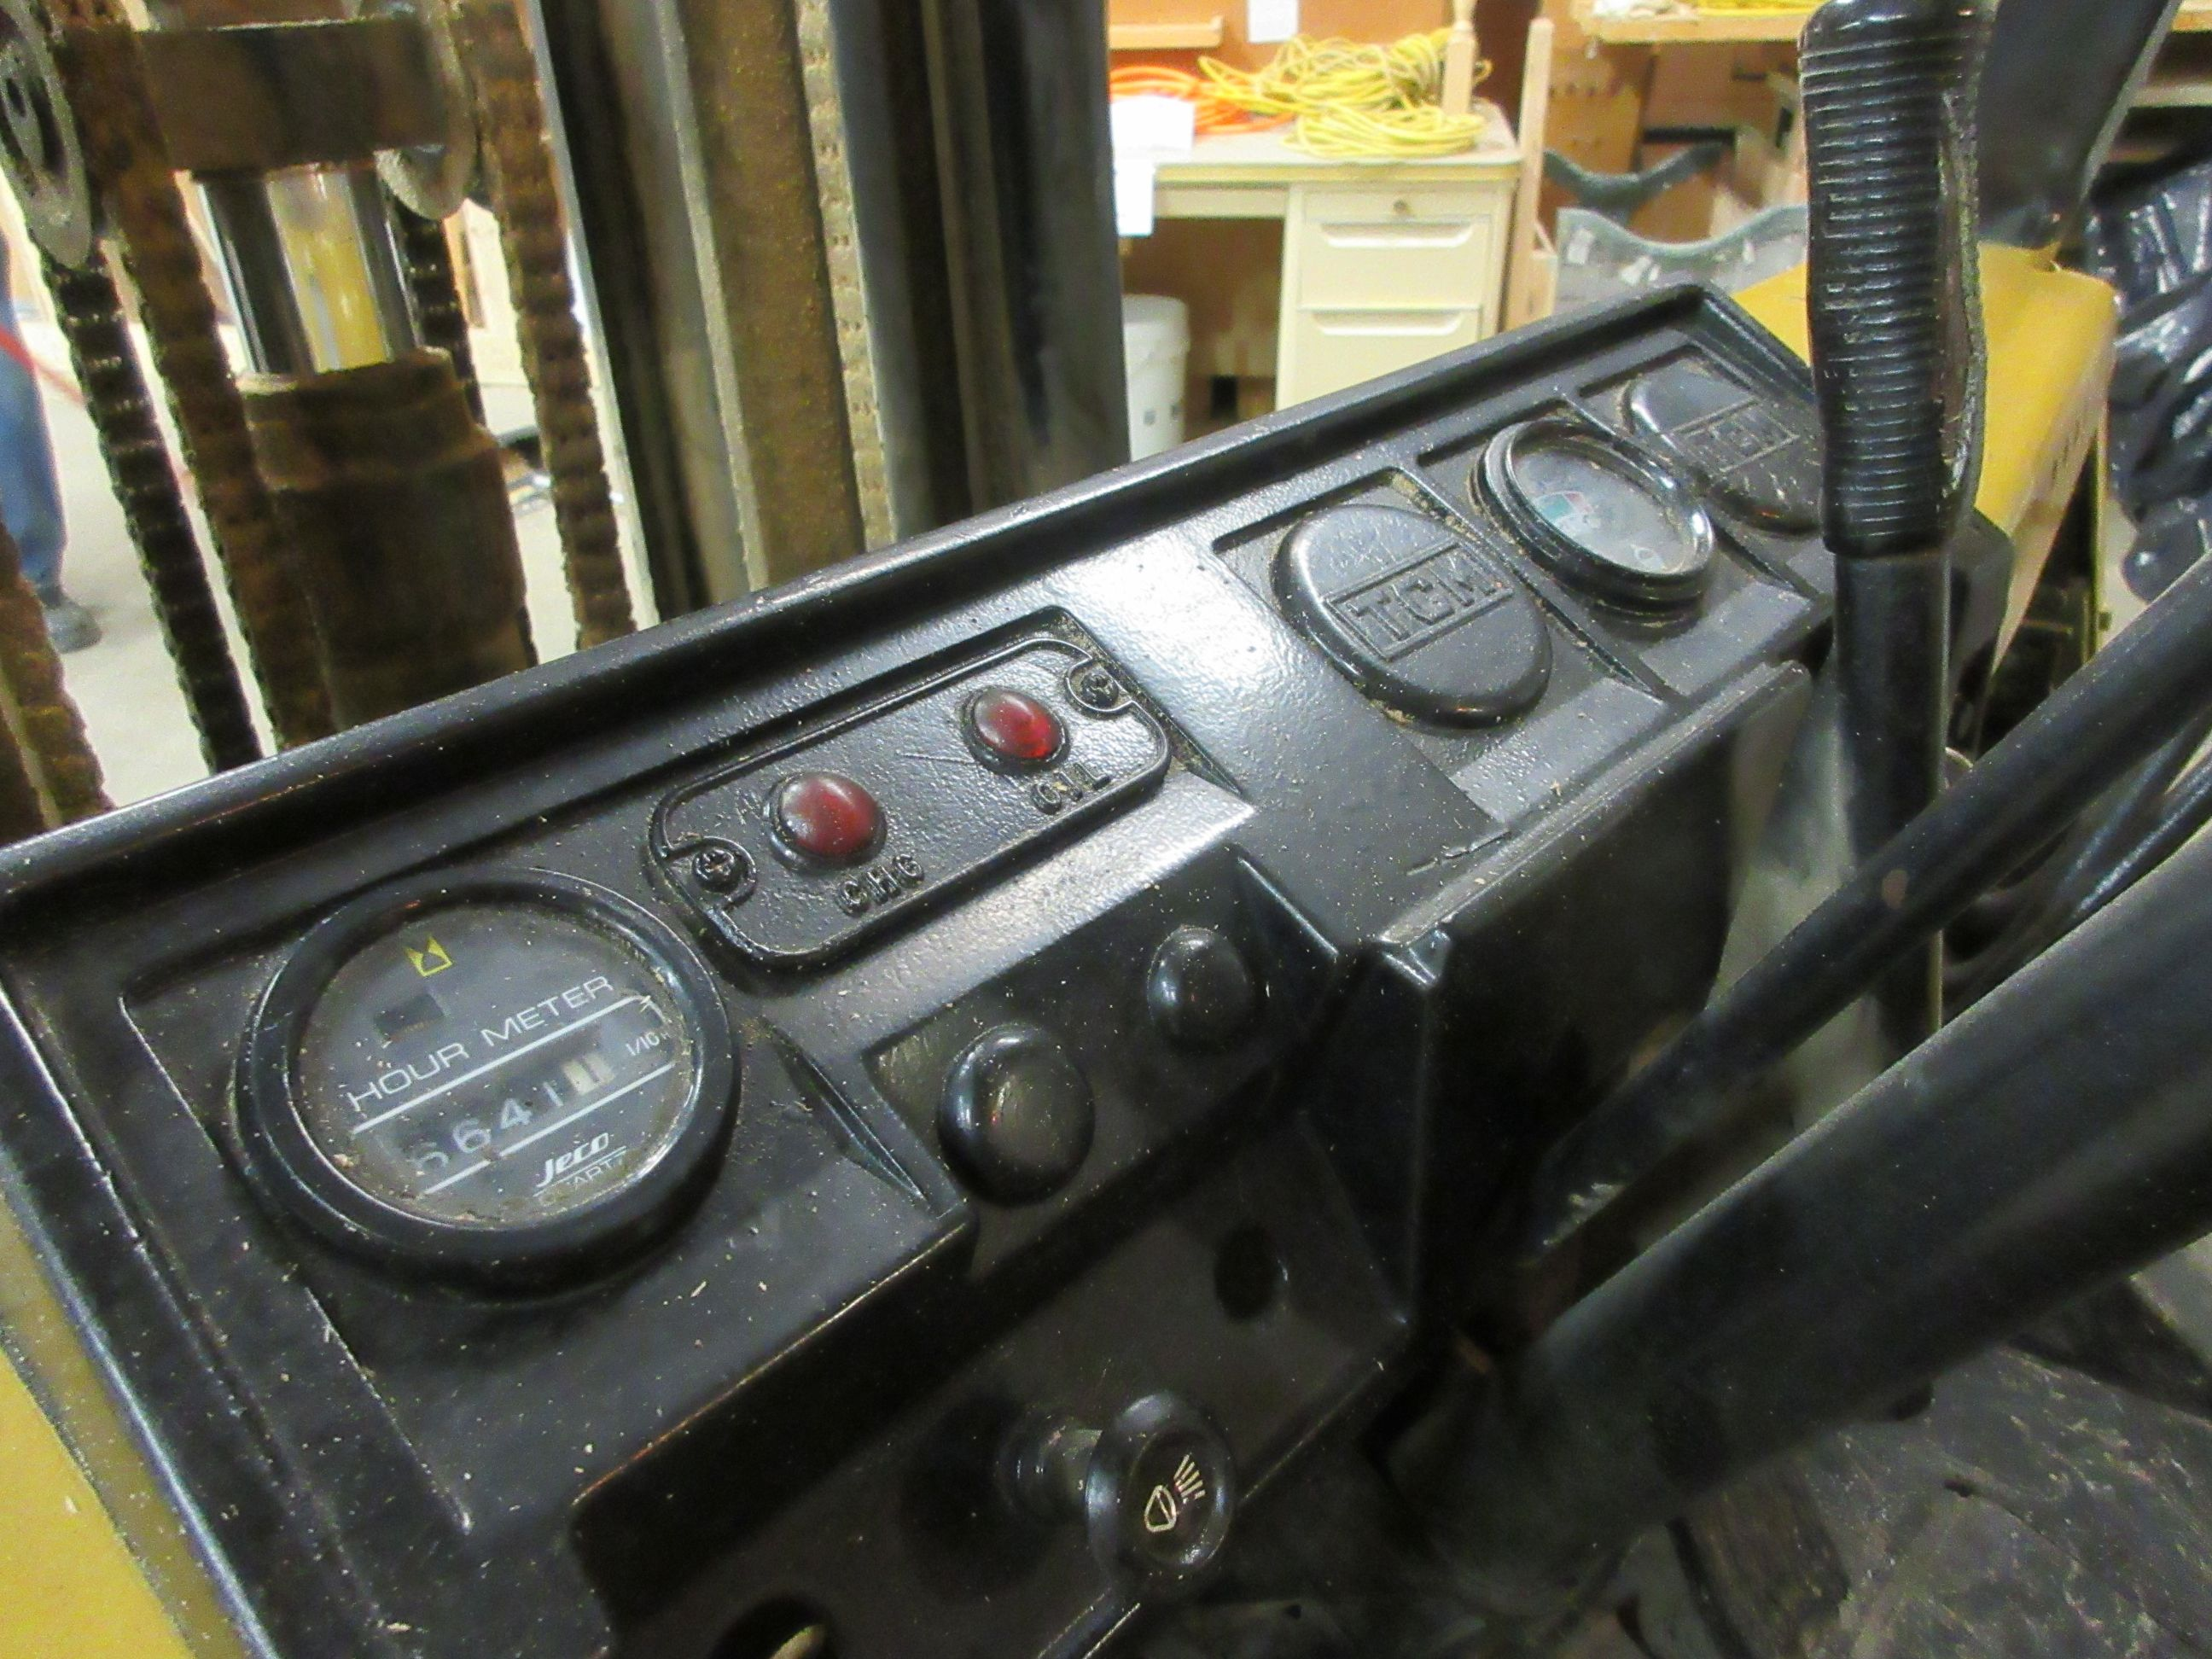 TCM propane forklift, Mod: FG25, 3 sections, CAP: 5,000 lbs - Image 2 of 6